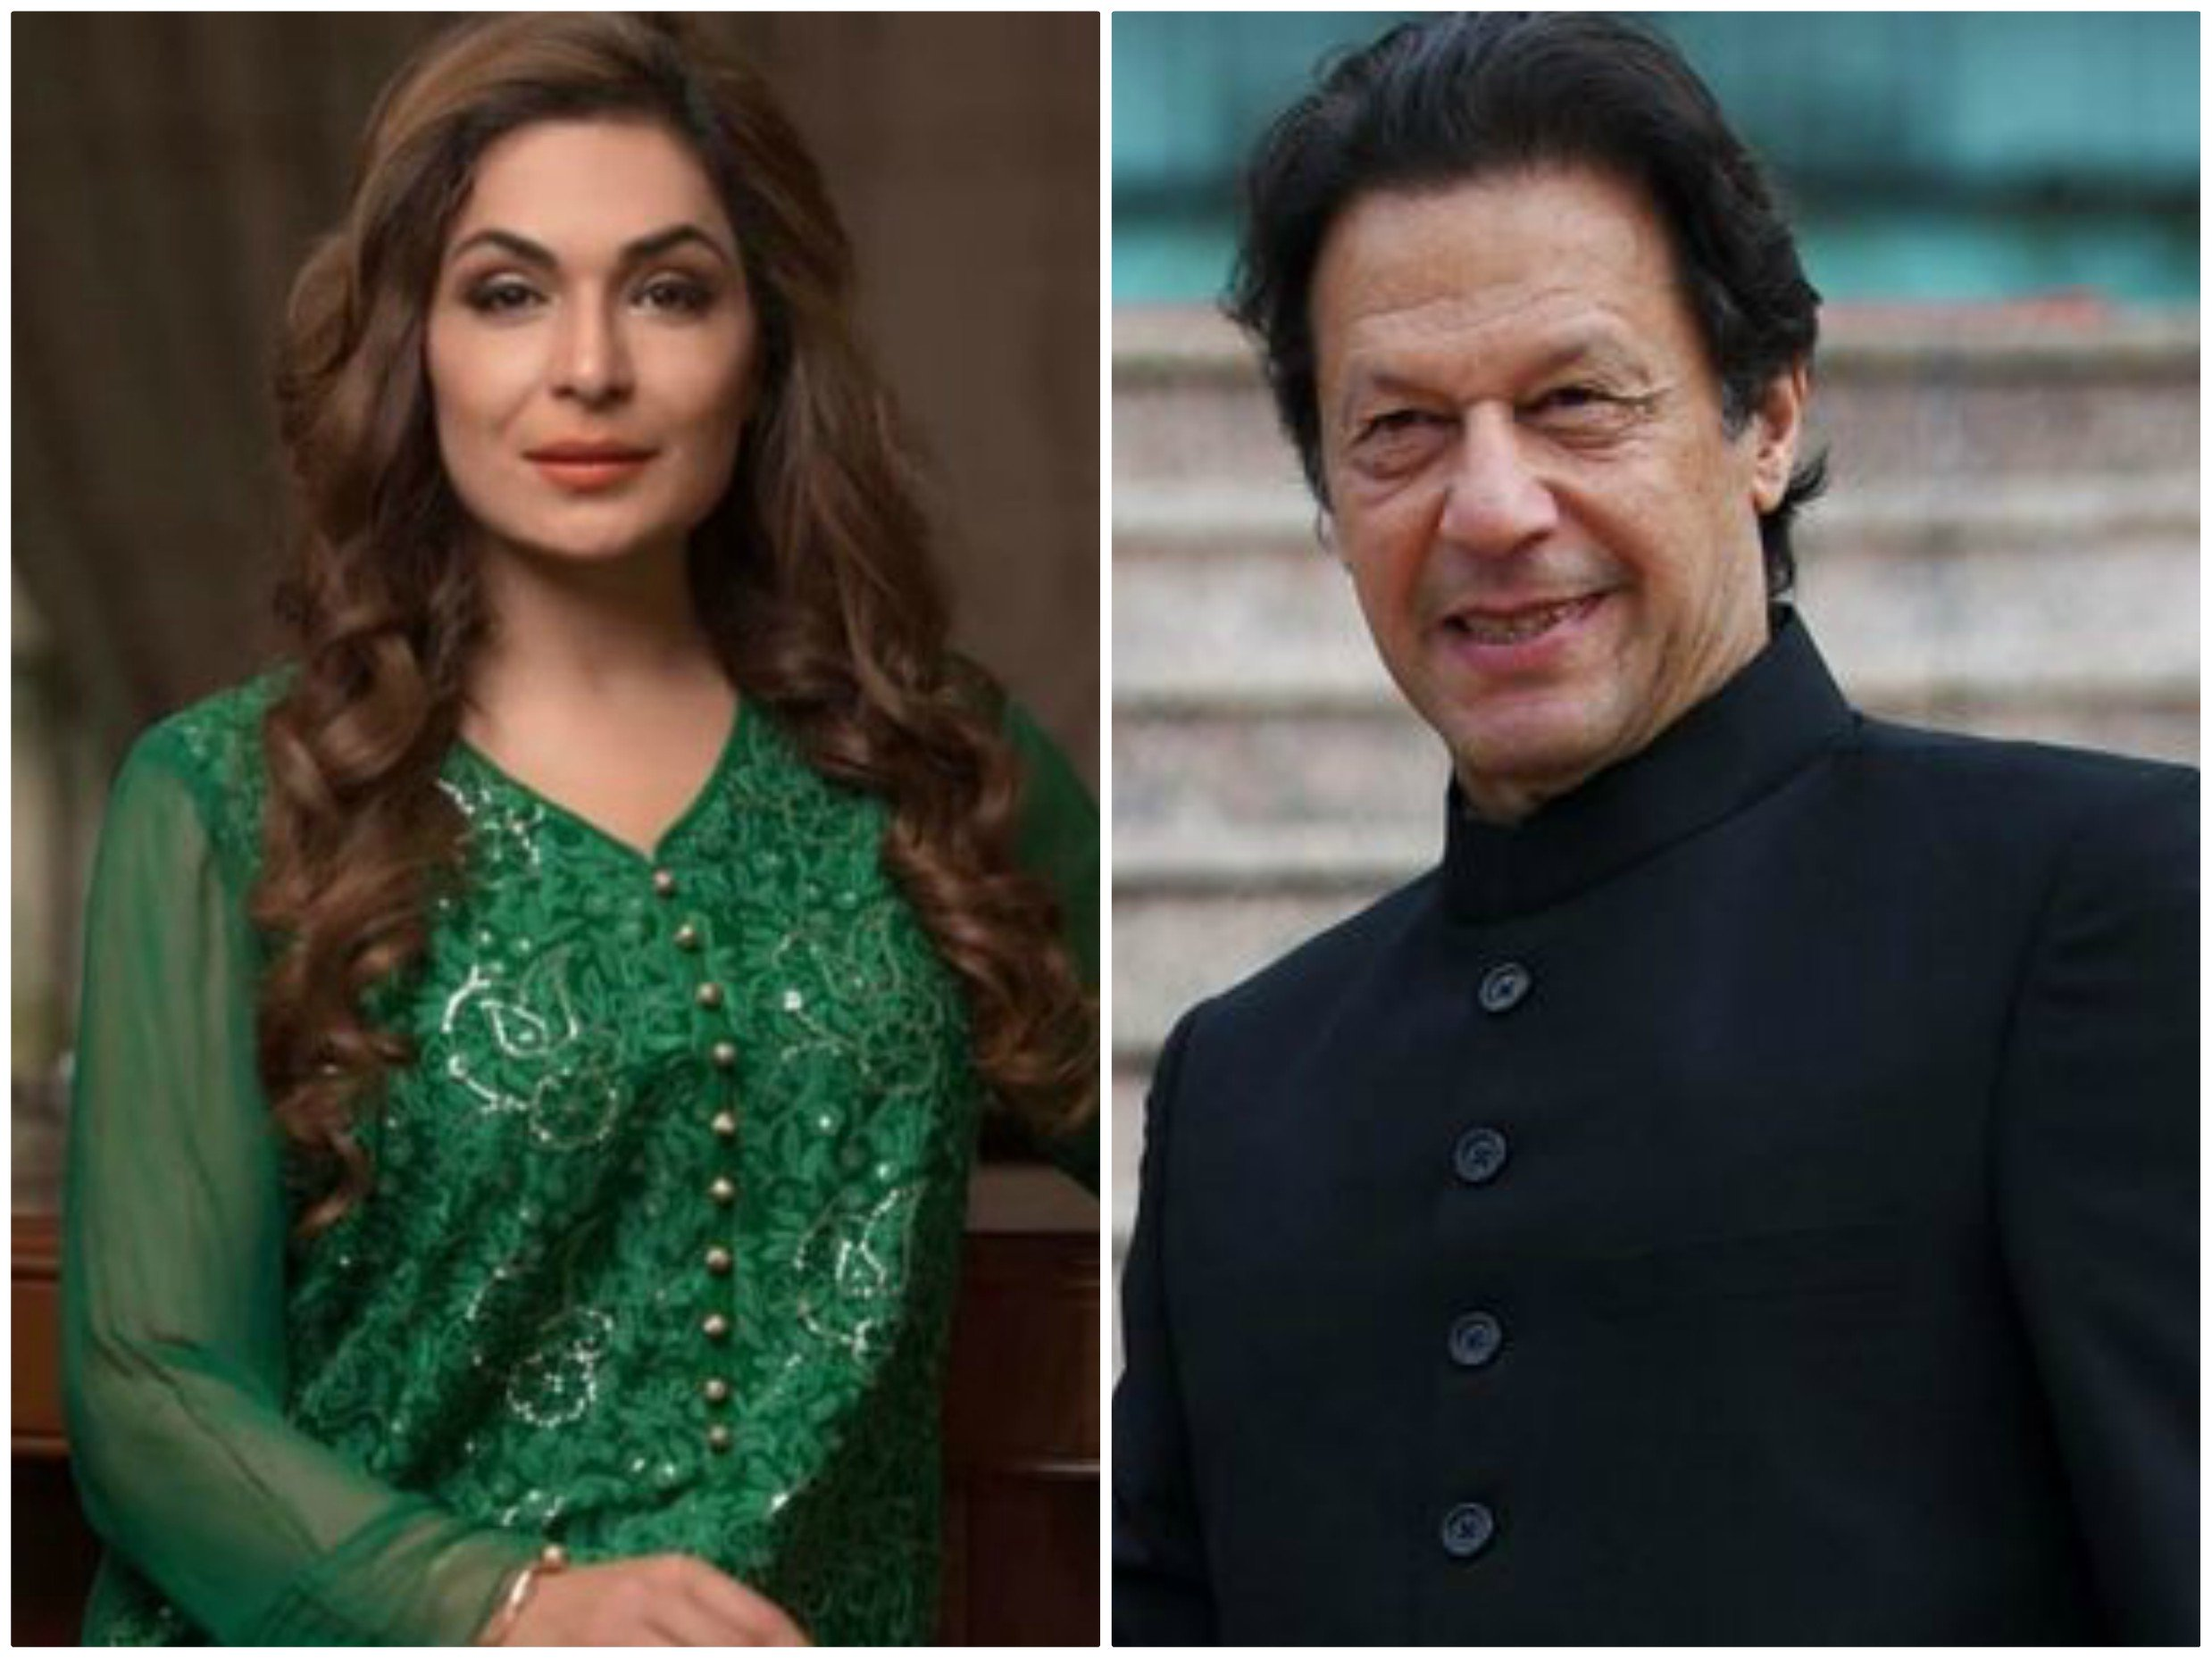 meera stuck in new york asks pm imran khan for assistance